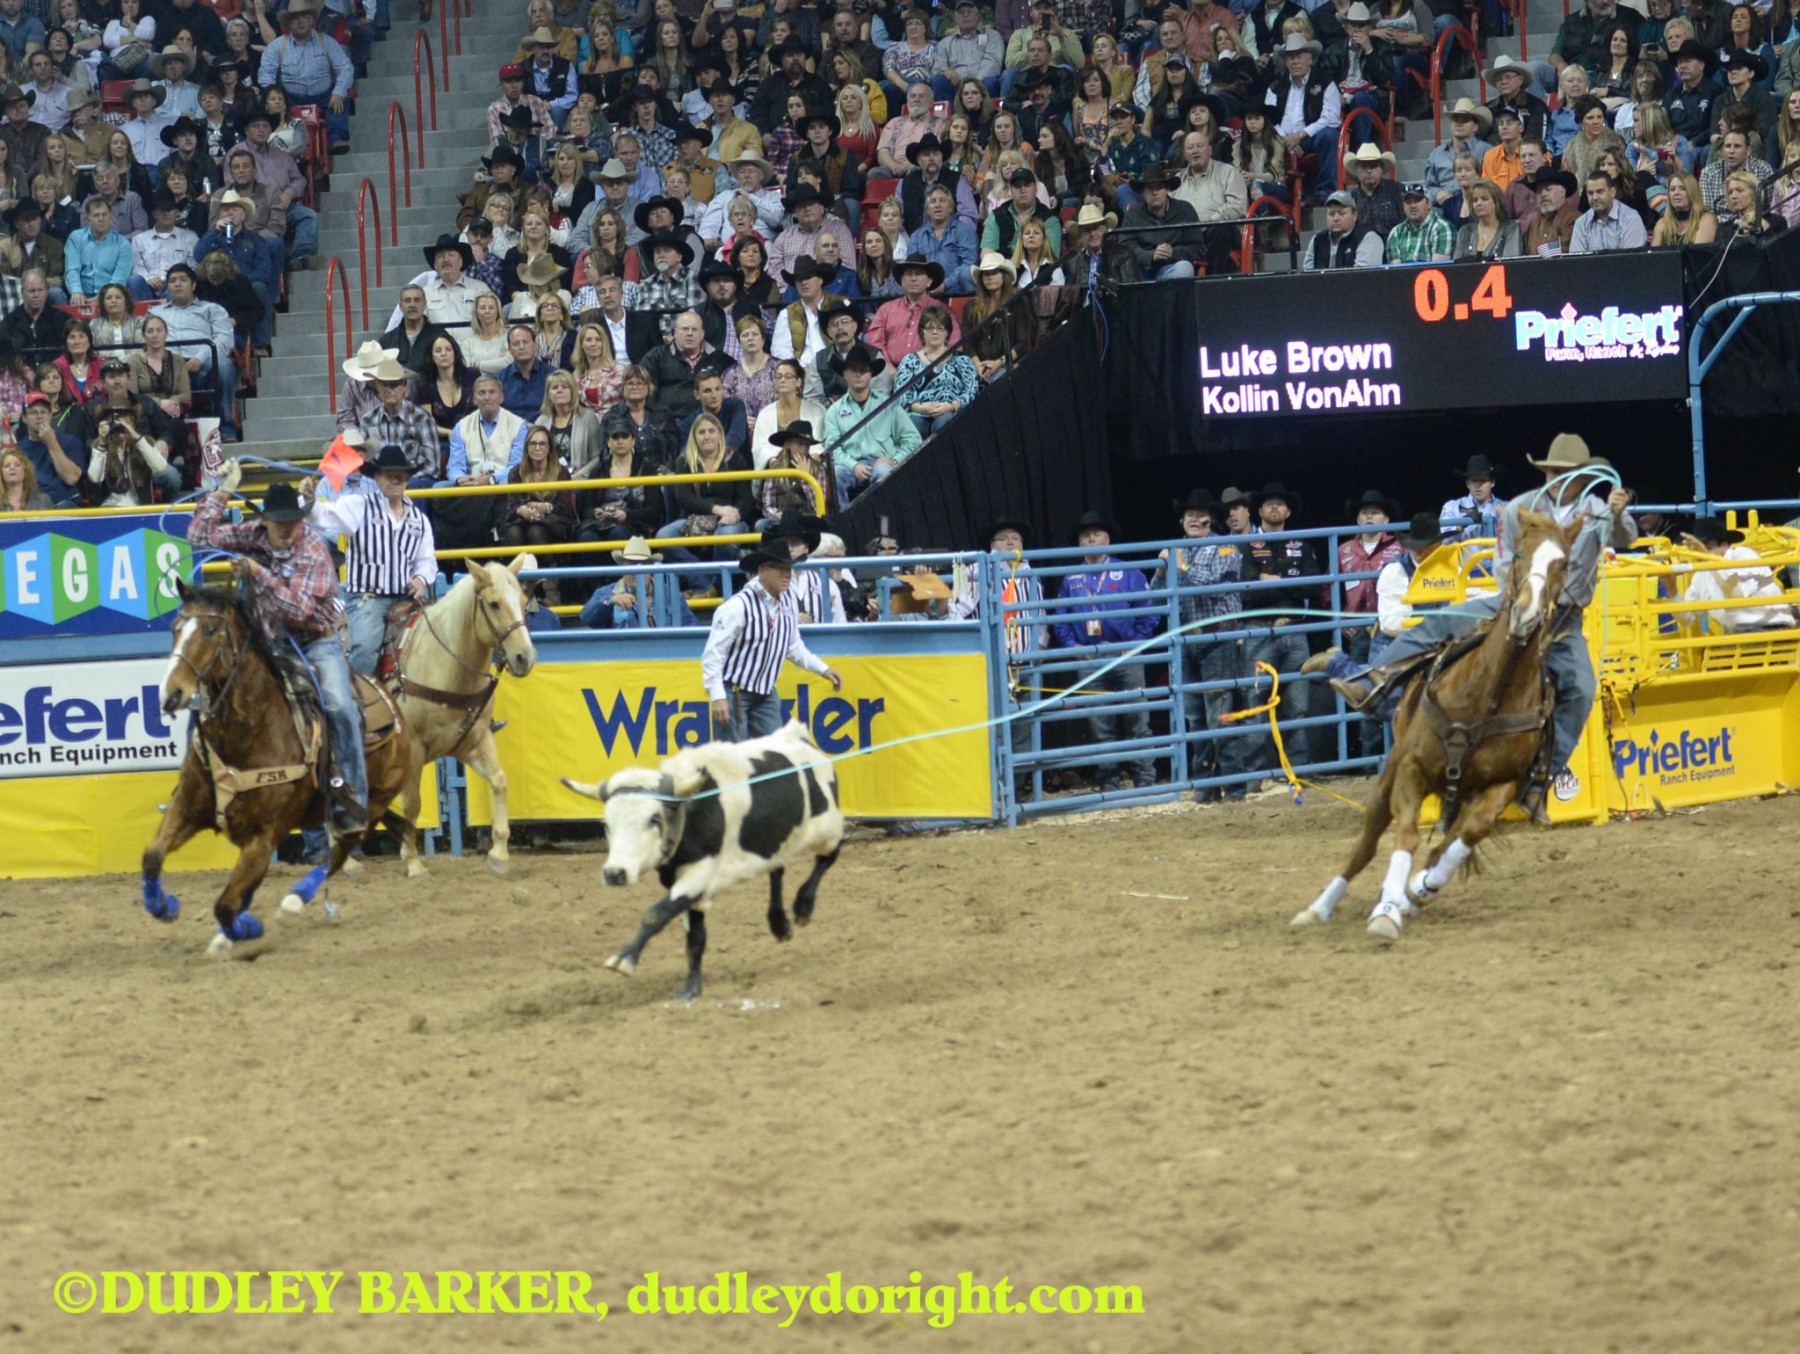 Luke Brown and partner Kollin VonAhn won the round four team roping. They are shown competing in round three. || Photo by DUDLEY BARKER, dudleydoright.com